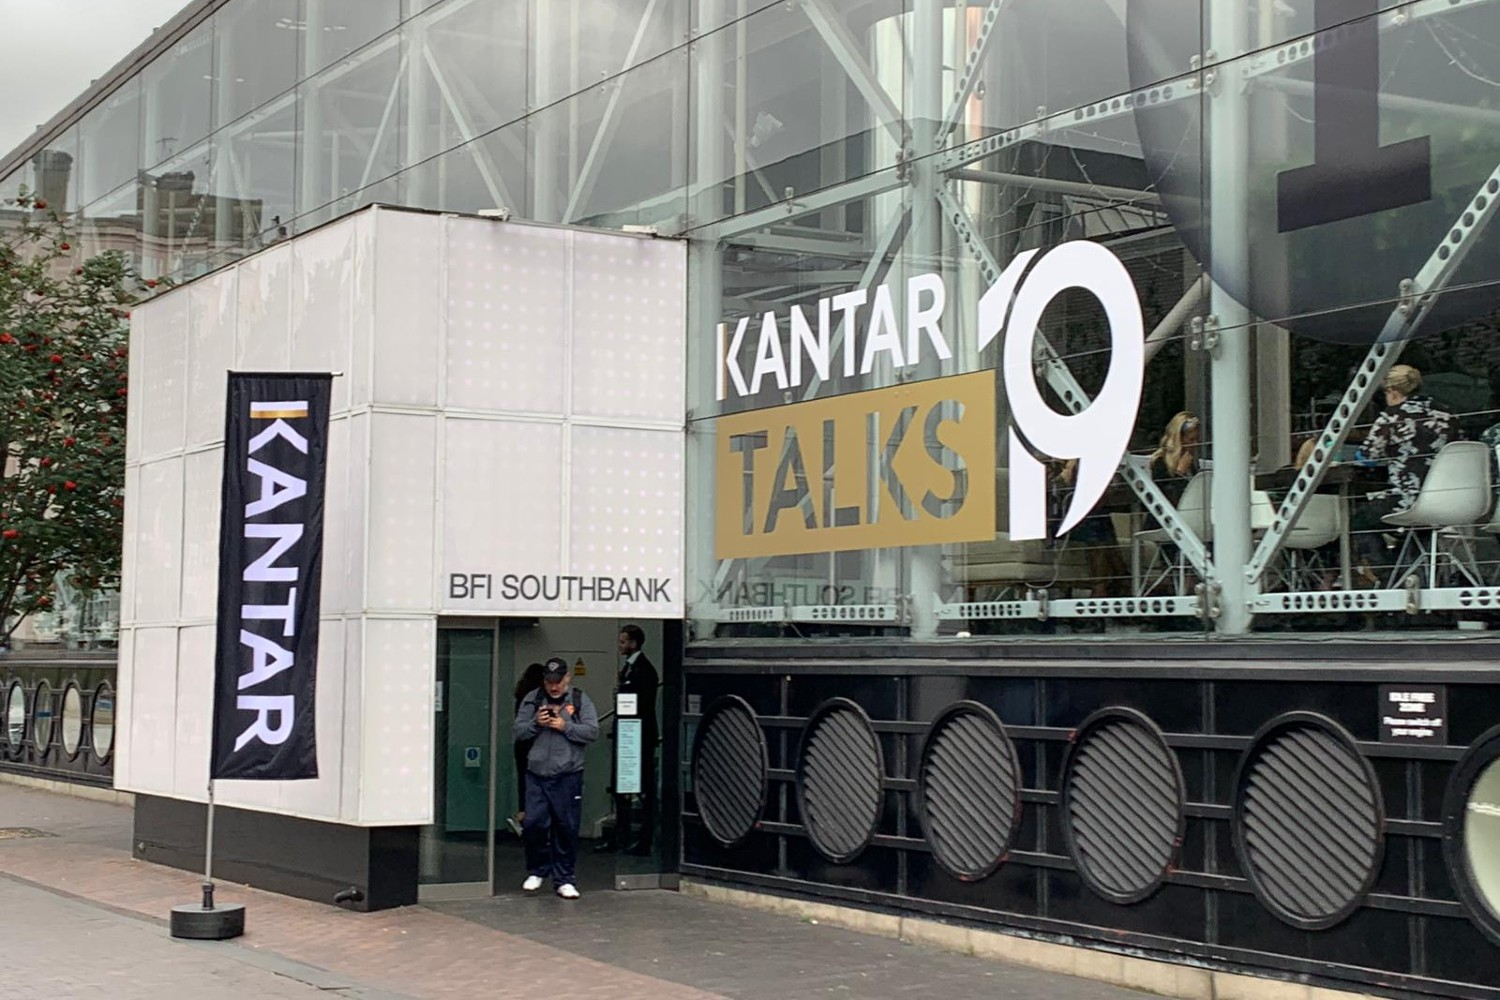 kantar talks 2019 uk